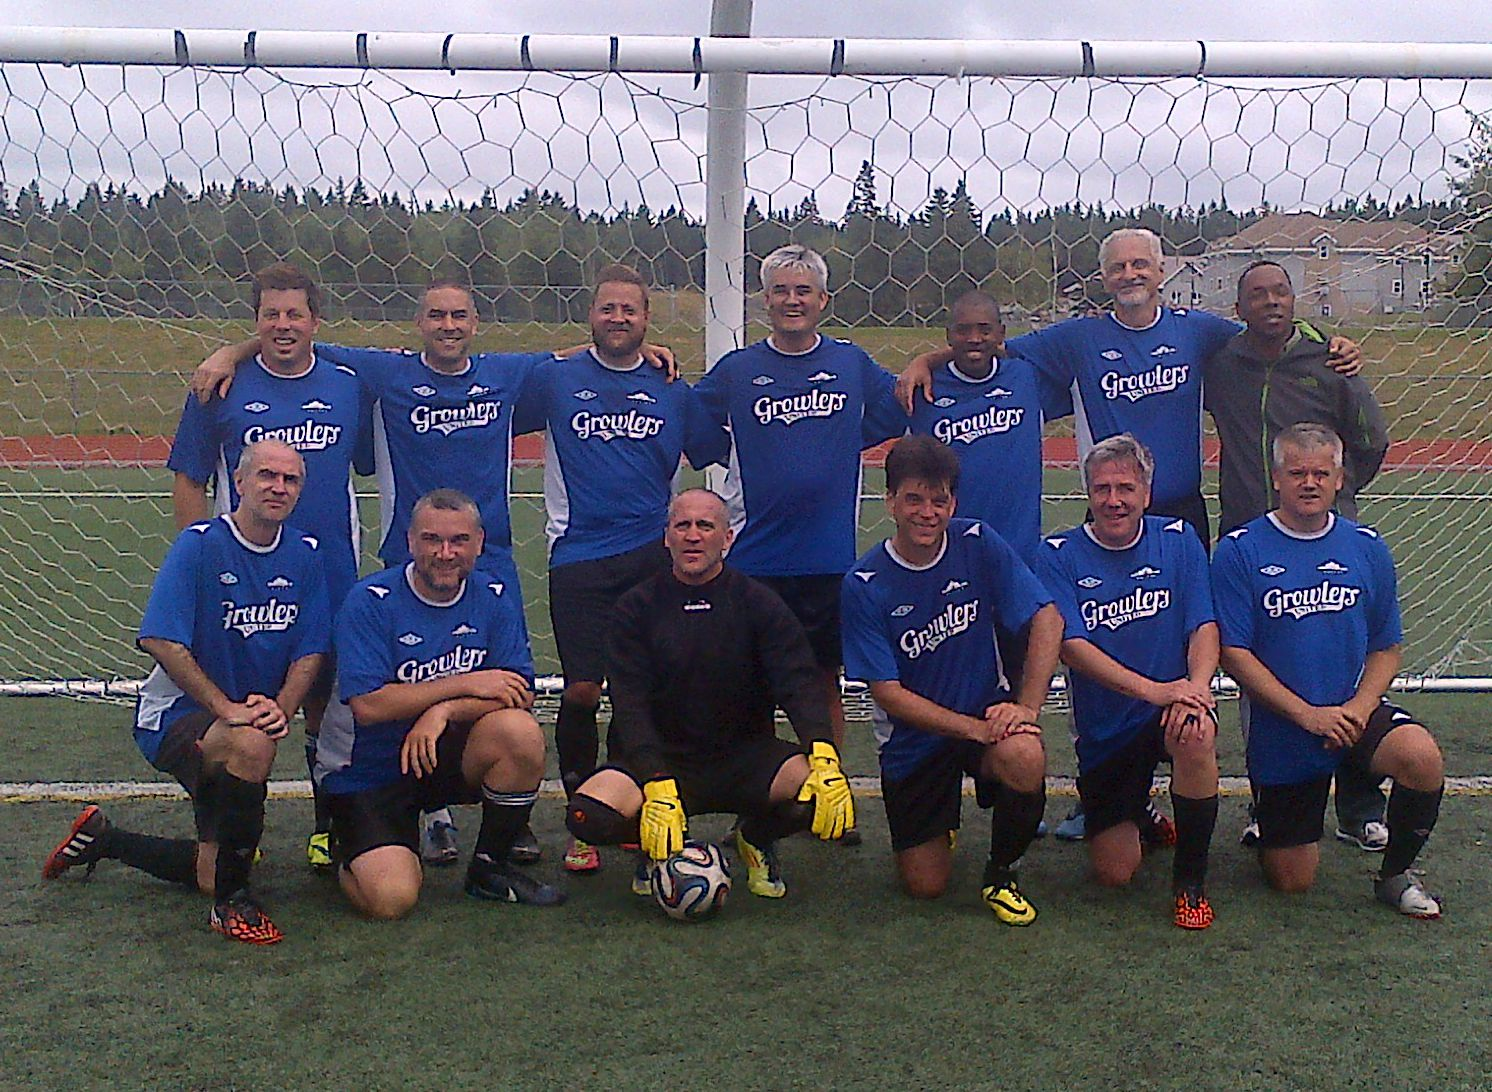 The Fredericton Old Boys Team